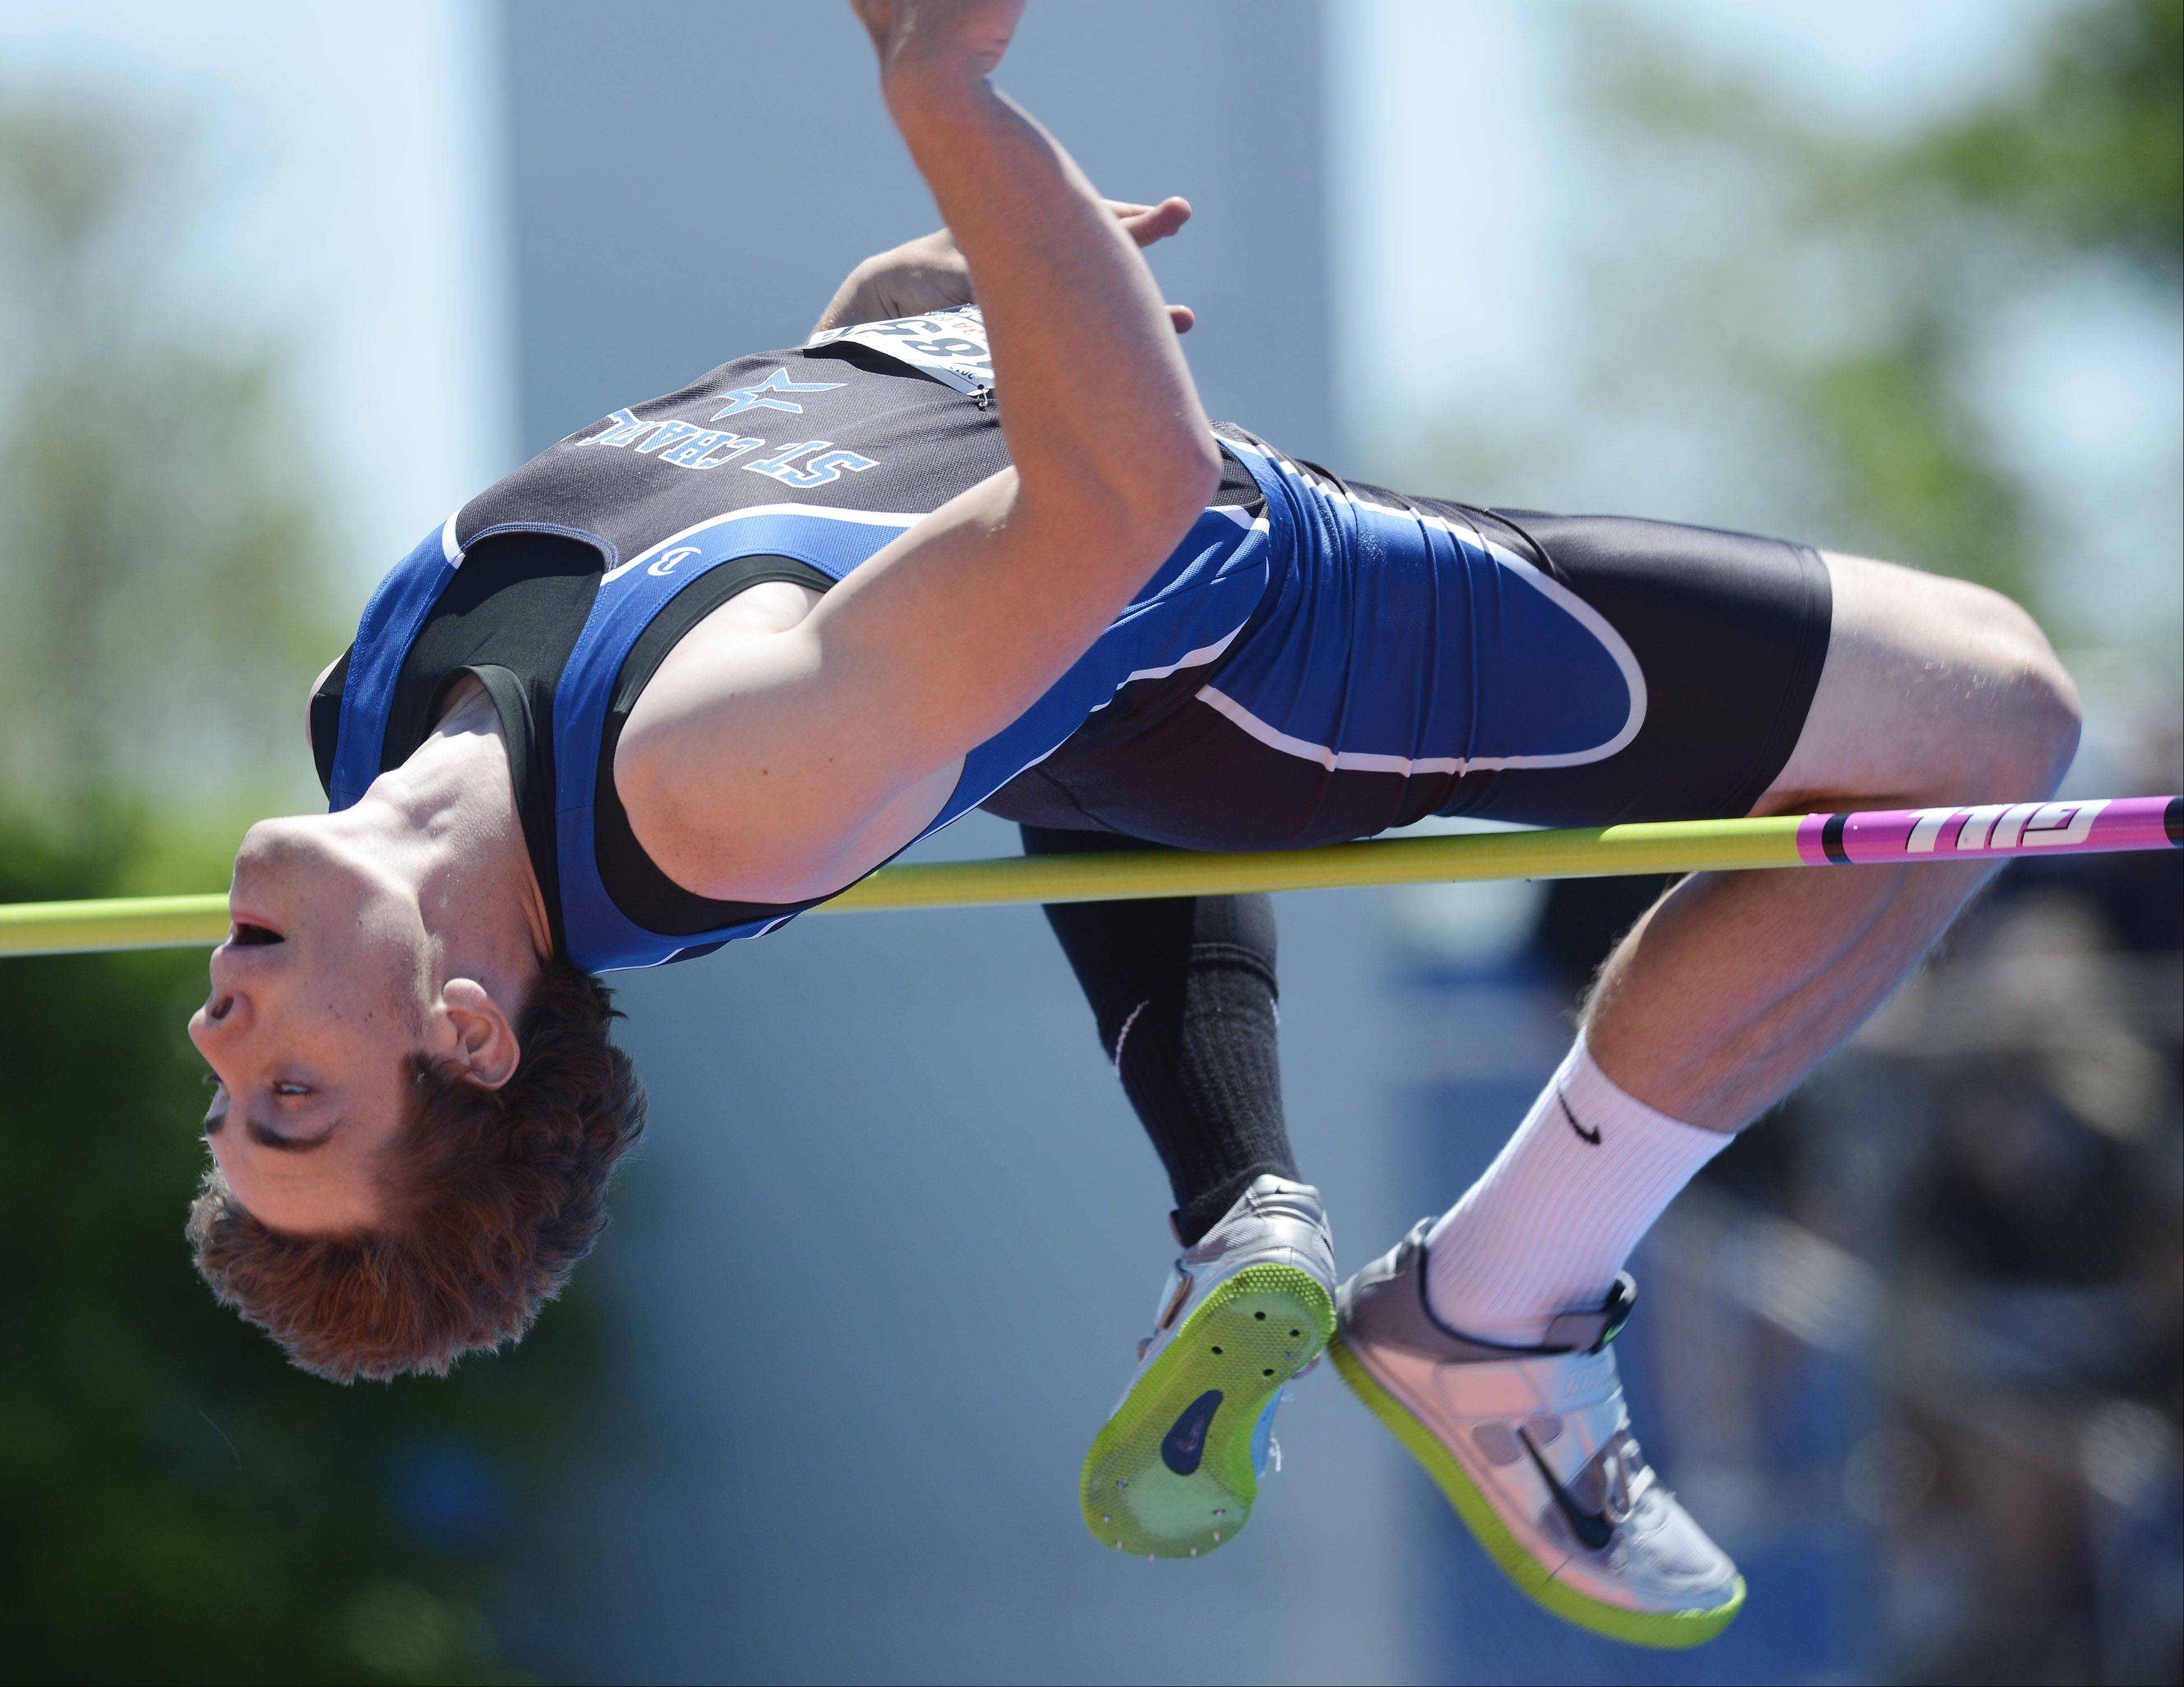 Craig Brueske is predicting St. Charles North senior Erik Miller will clear 6-10 and take second place in the state high jump this spring.